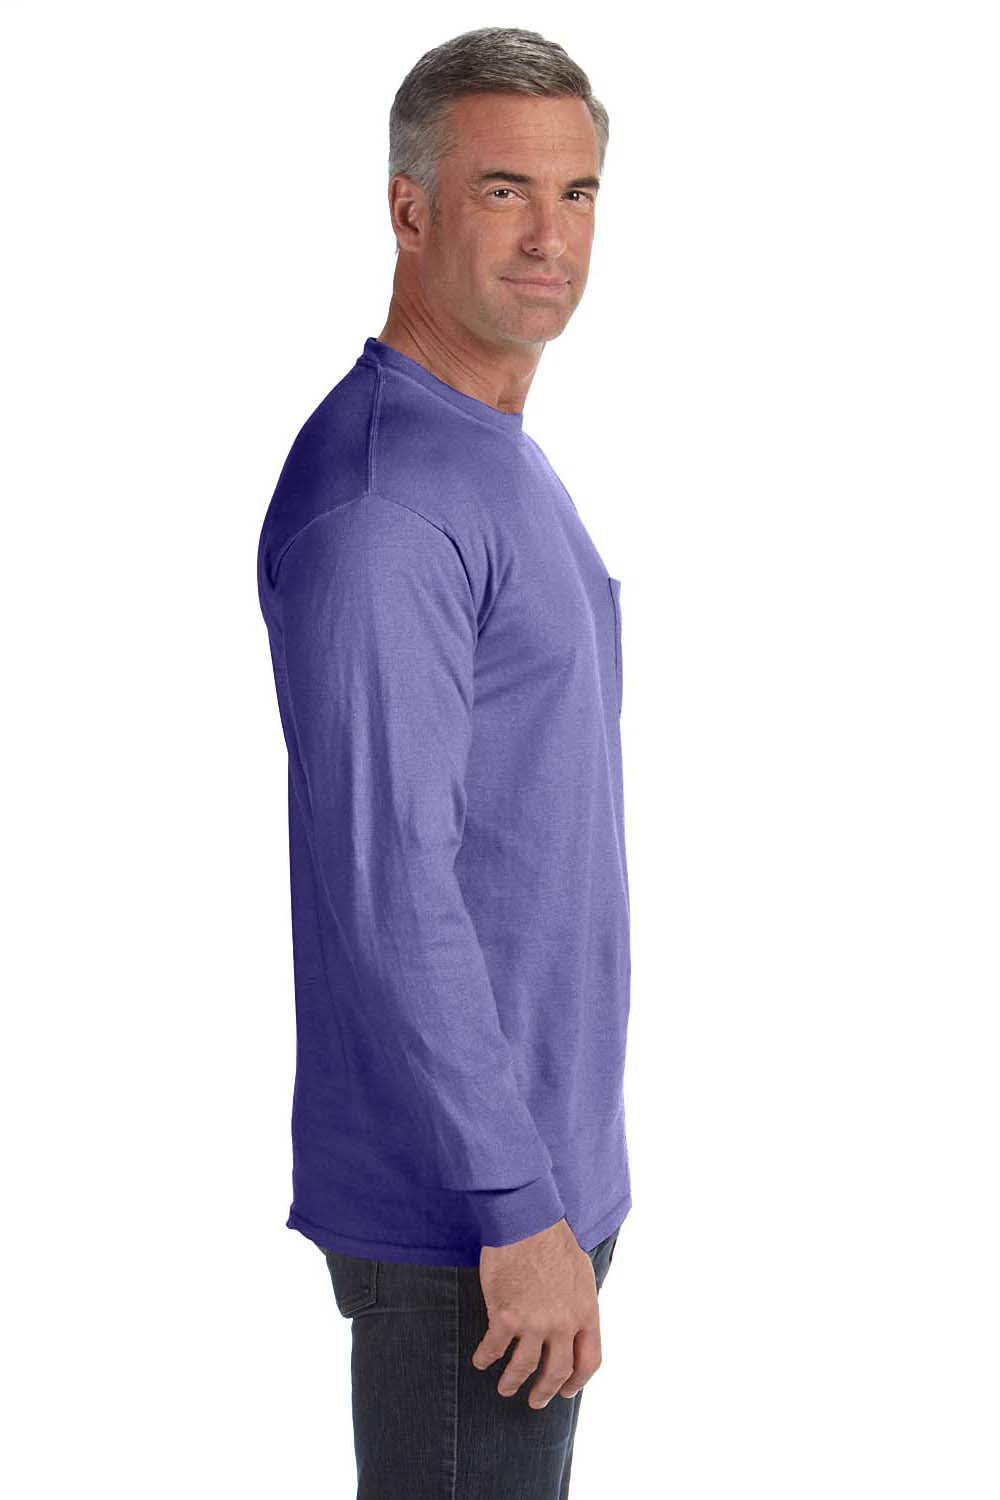 Comfort Colors C4410 Mens Long Sleeve Crewneck T-Shirt w/ Pocket Violet Purple Side